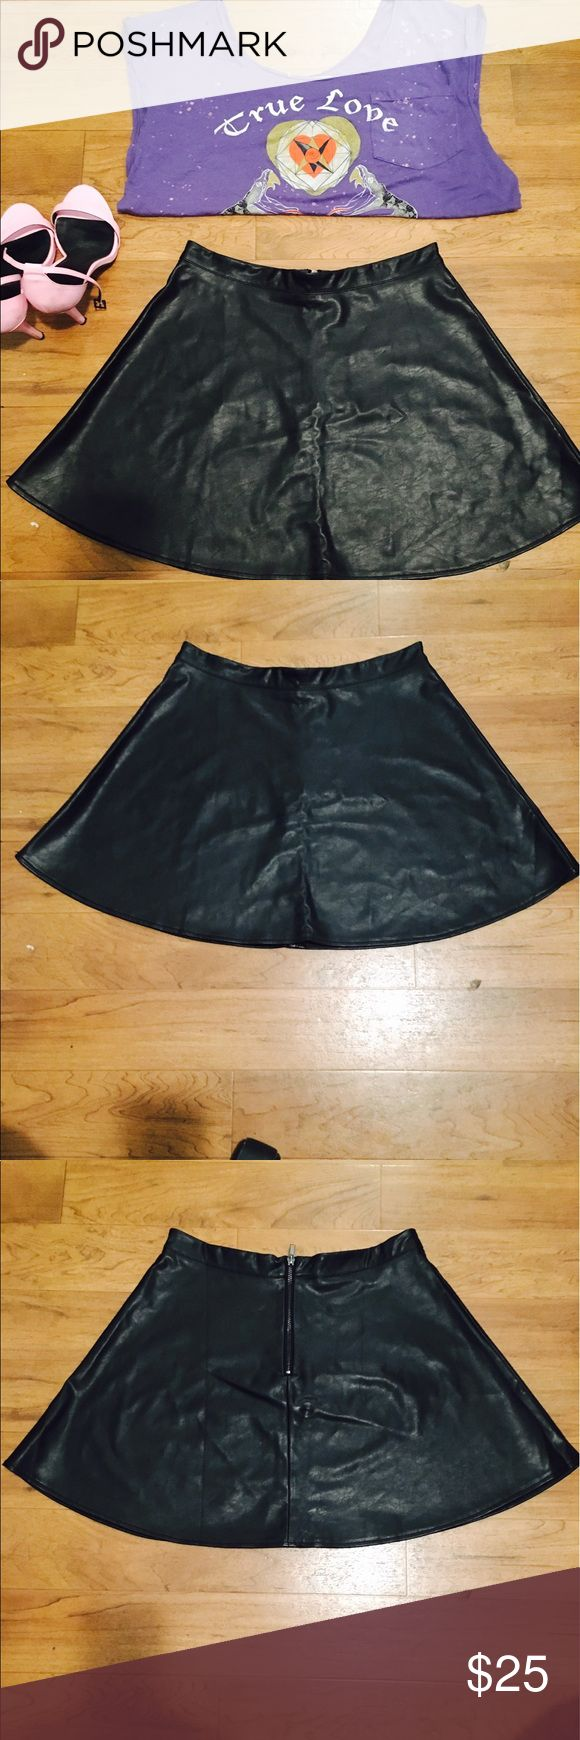 Pleather circle skirt!!! Black pleather mini circle skirt!!! Zipper in back!!! Great skirt to add a little edge to your look!!! iris Skirts Circle & Skater